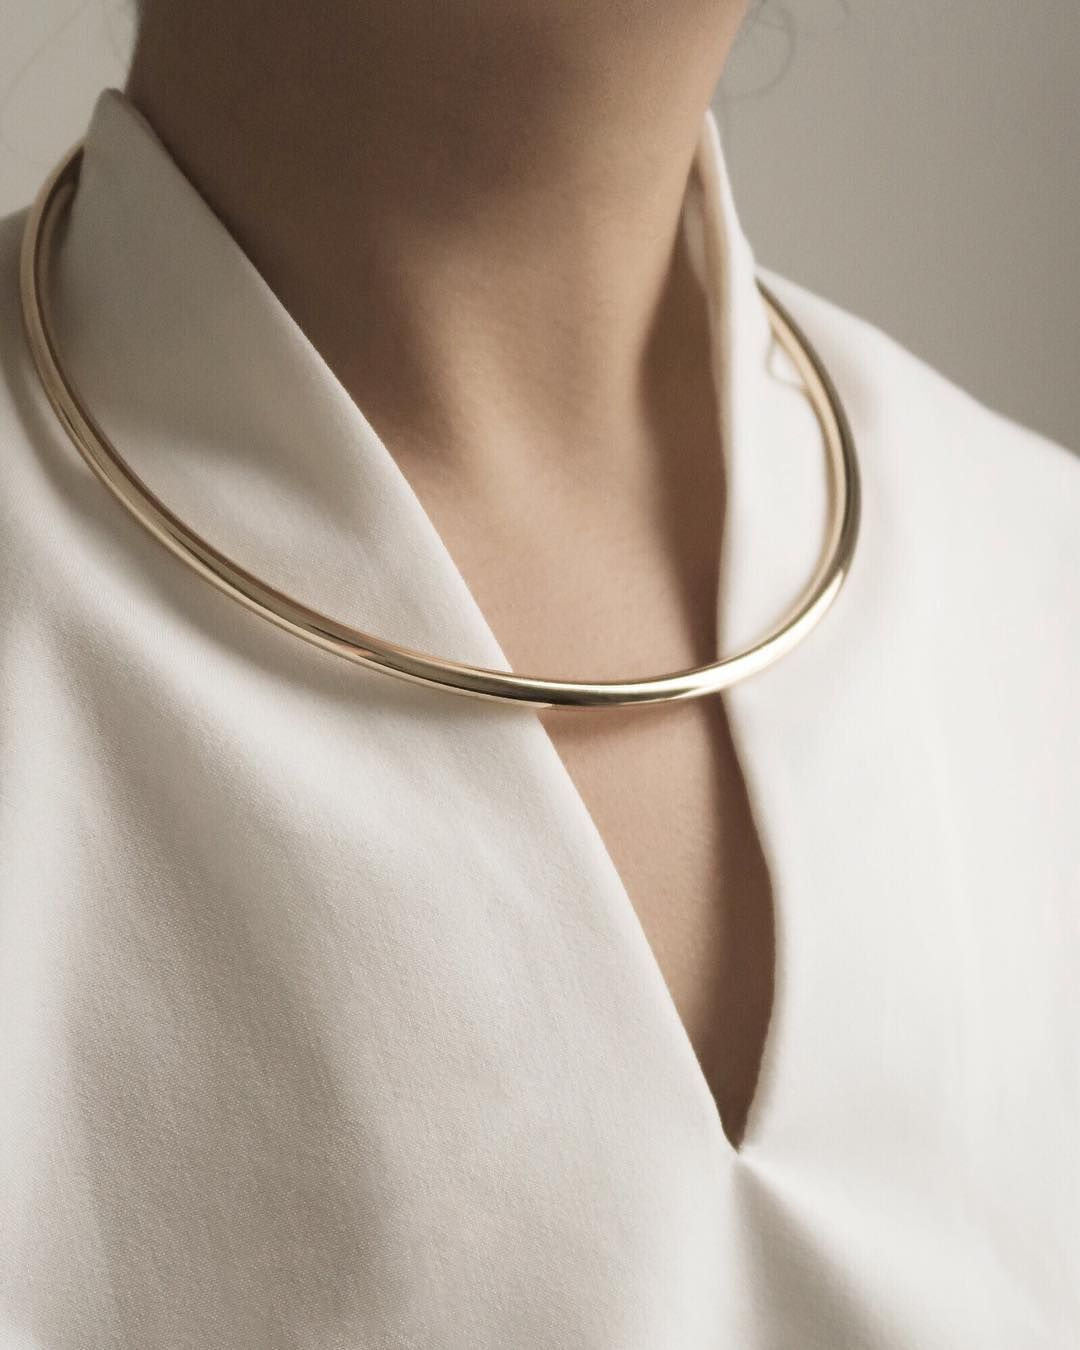 Pure Solid 925 Sterling Silver Choker Collar Wire Necklace Oval Hammered Style